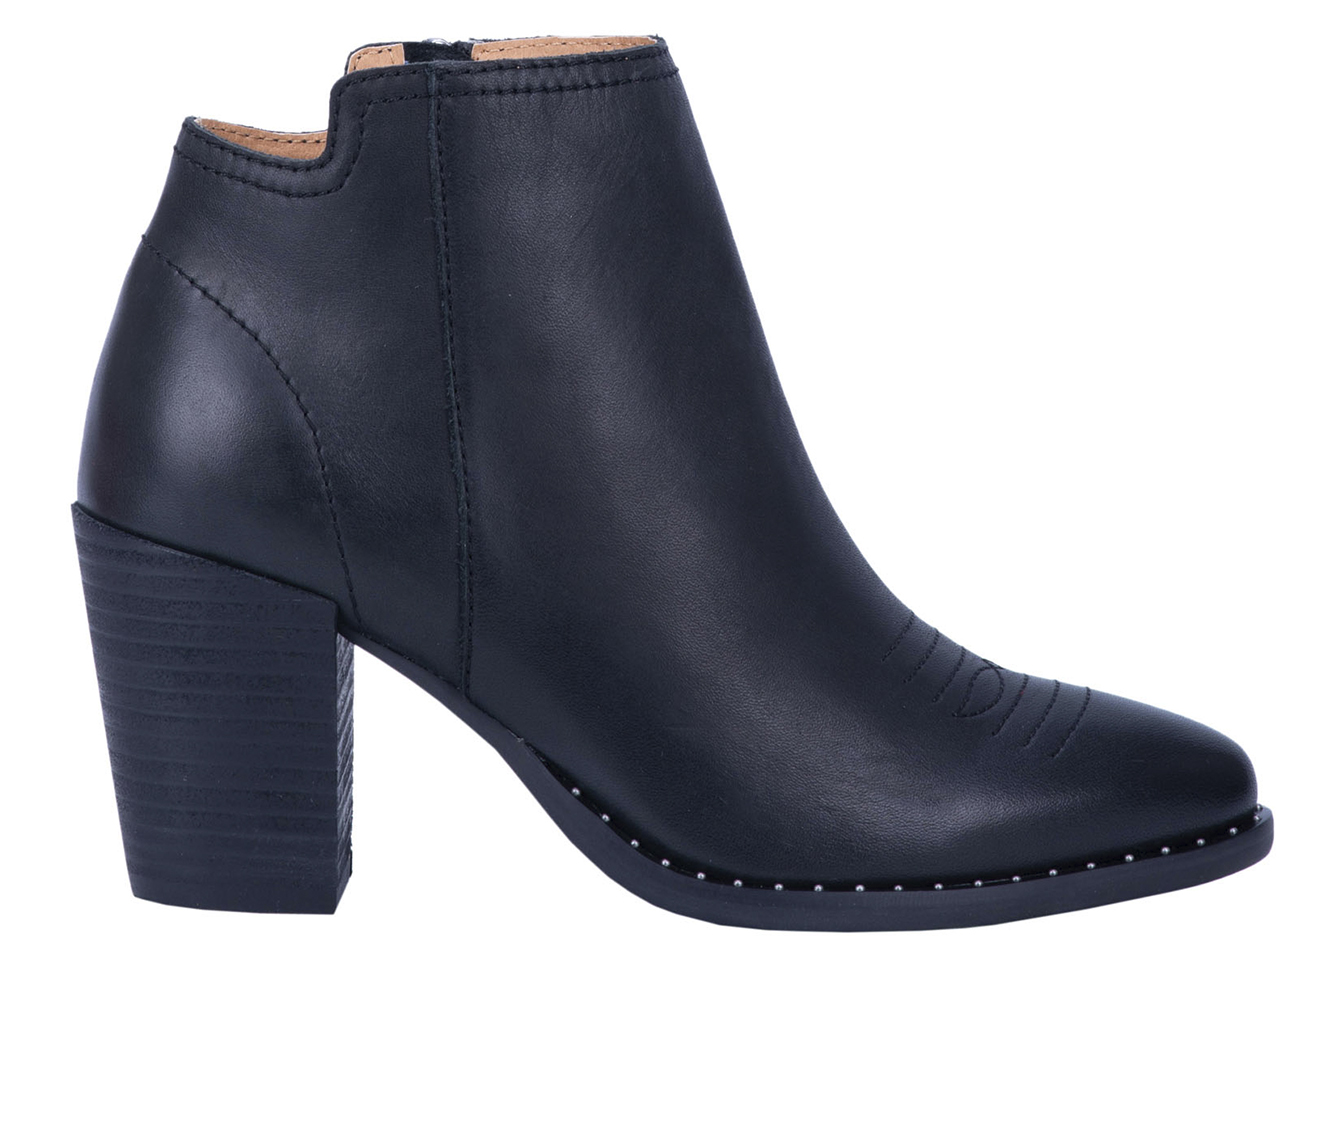 Dingo Boots Call Back Women's Boots (Black - Leather)